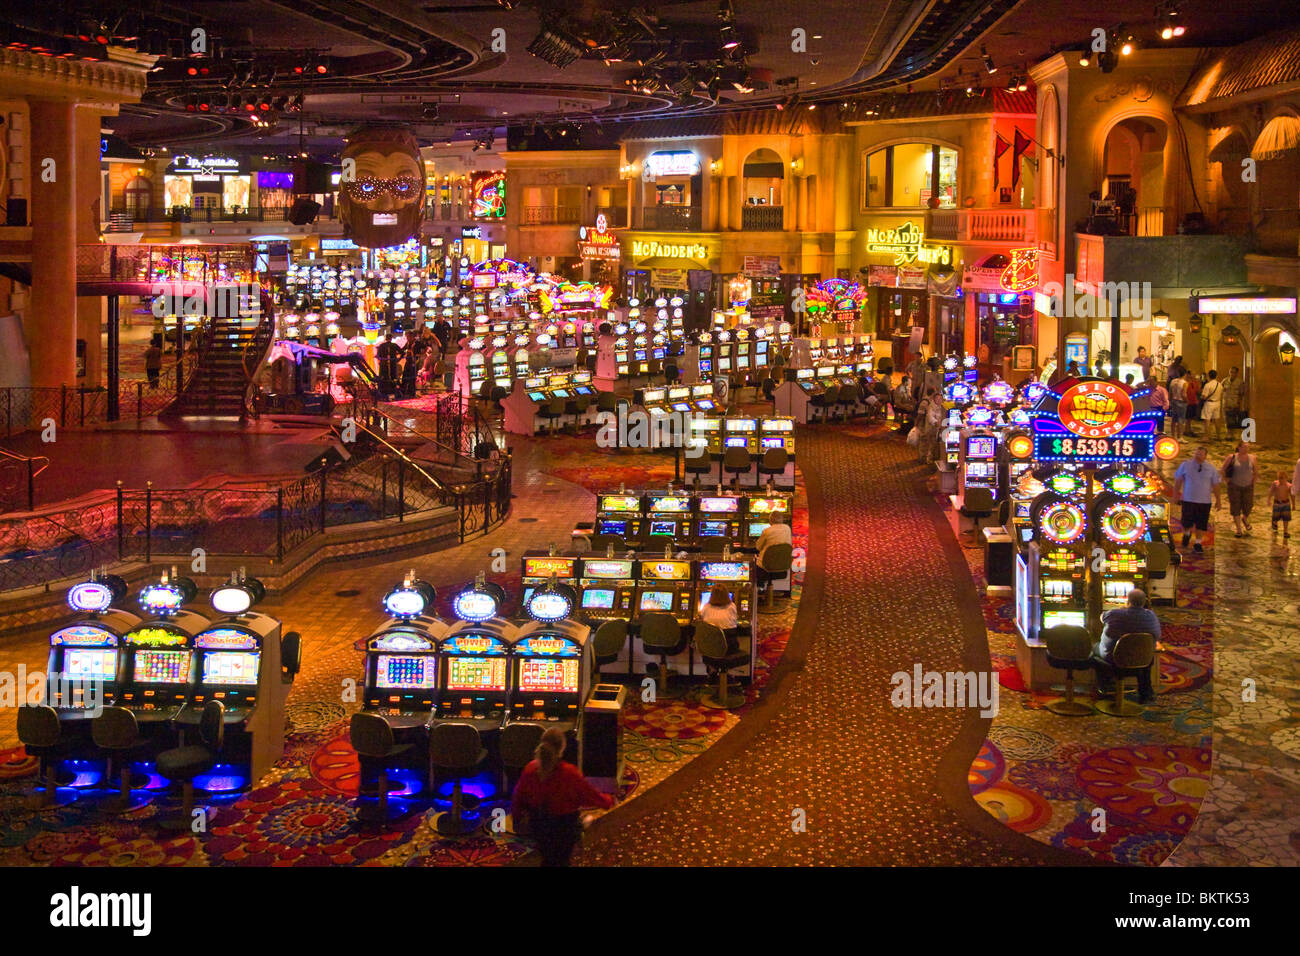 Rio All Suite Hotel Casino Las Vegas